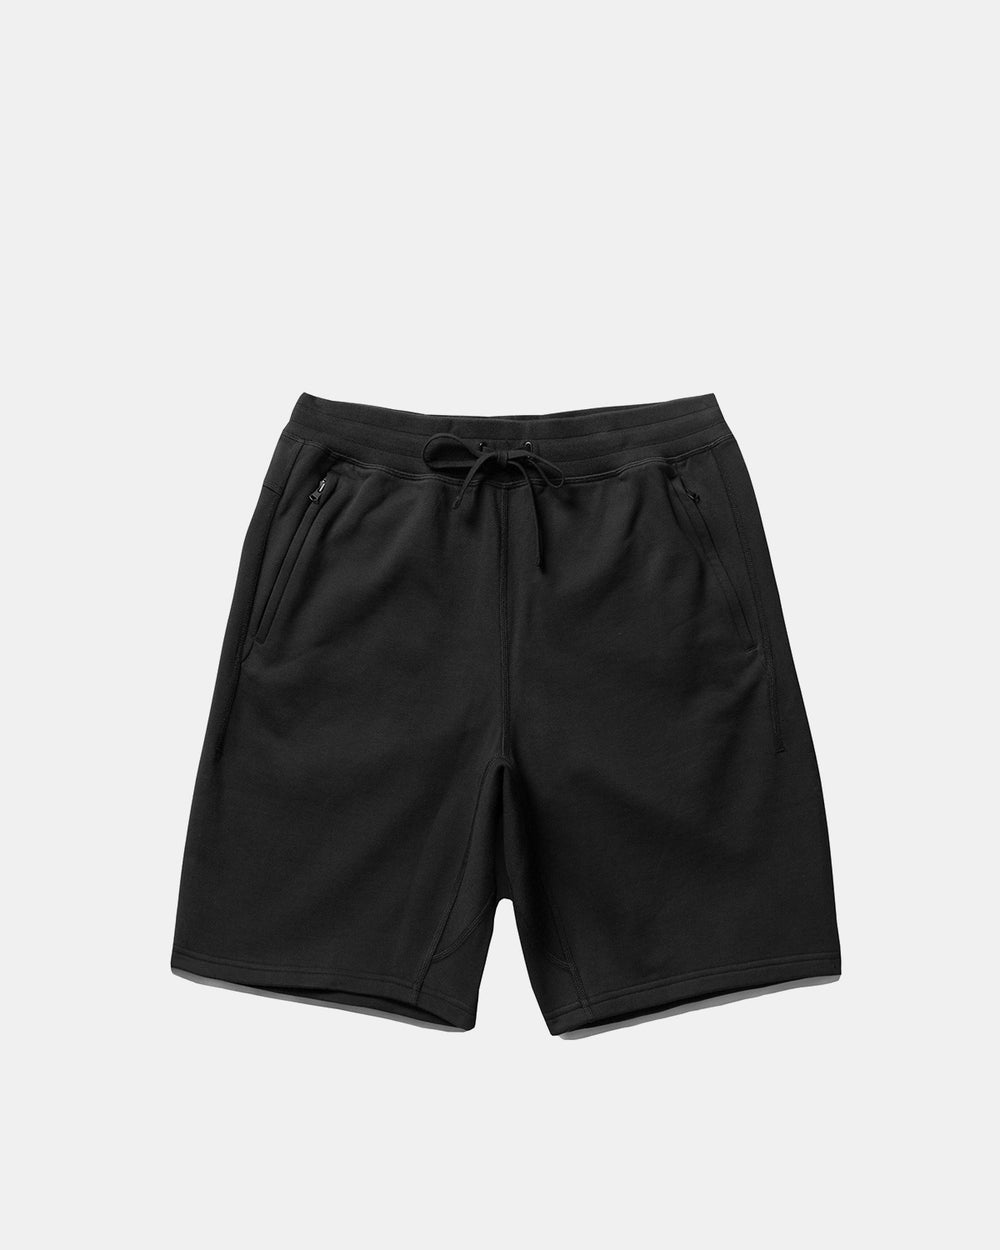 adidas x Reigning Champ Short (Black)